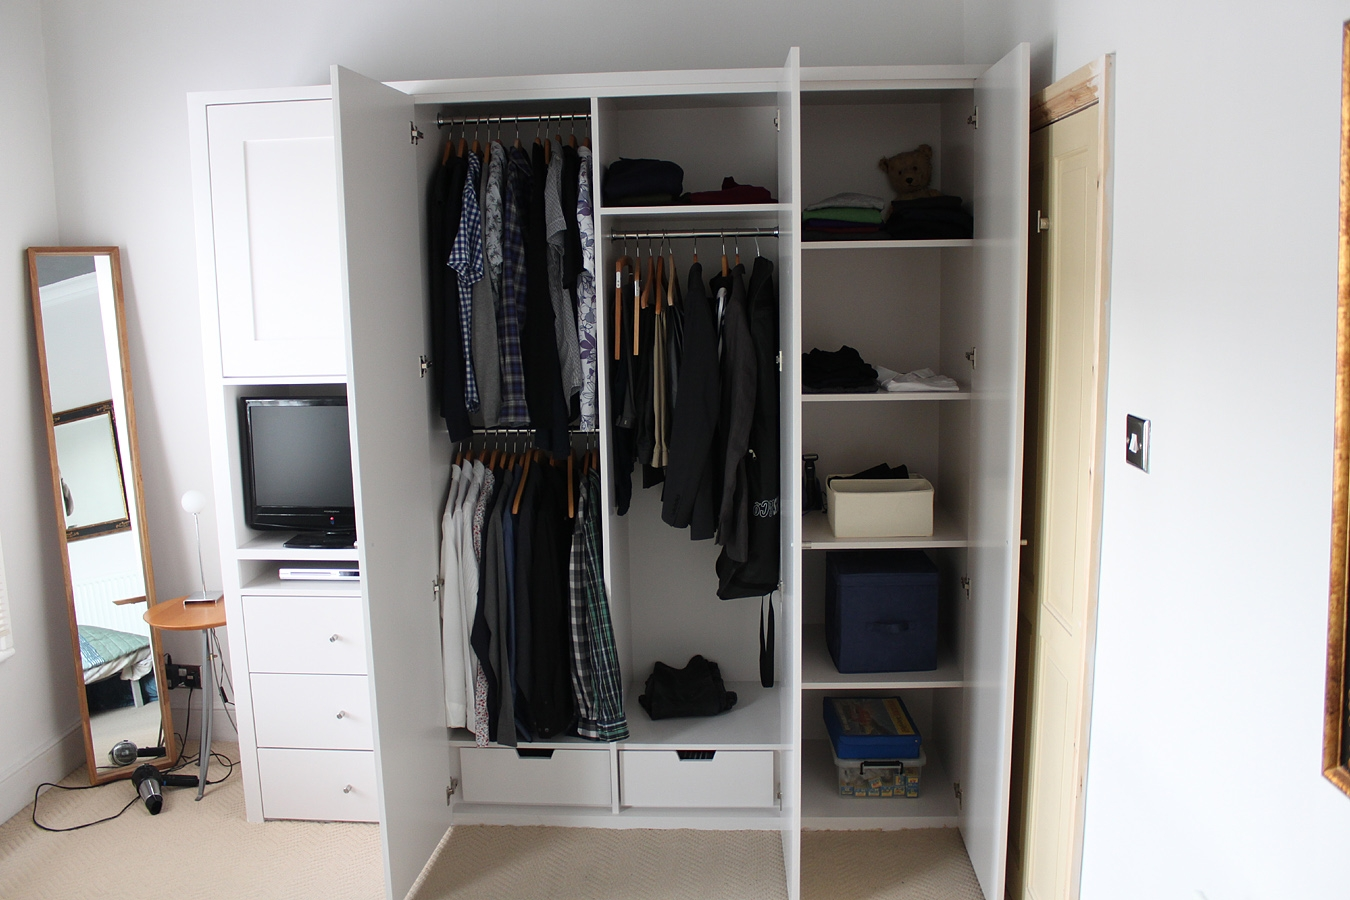 Indian Wardrobe Designs From Inside Google Search Wardrobe Intended For Built In Cupboard Shelving (View 12 of 15)